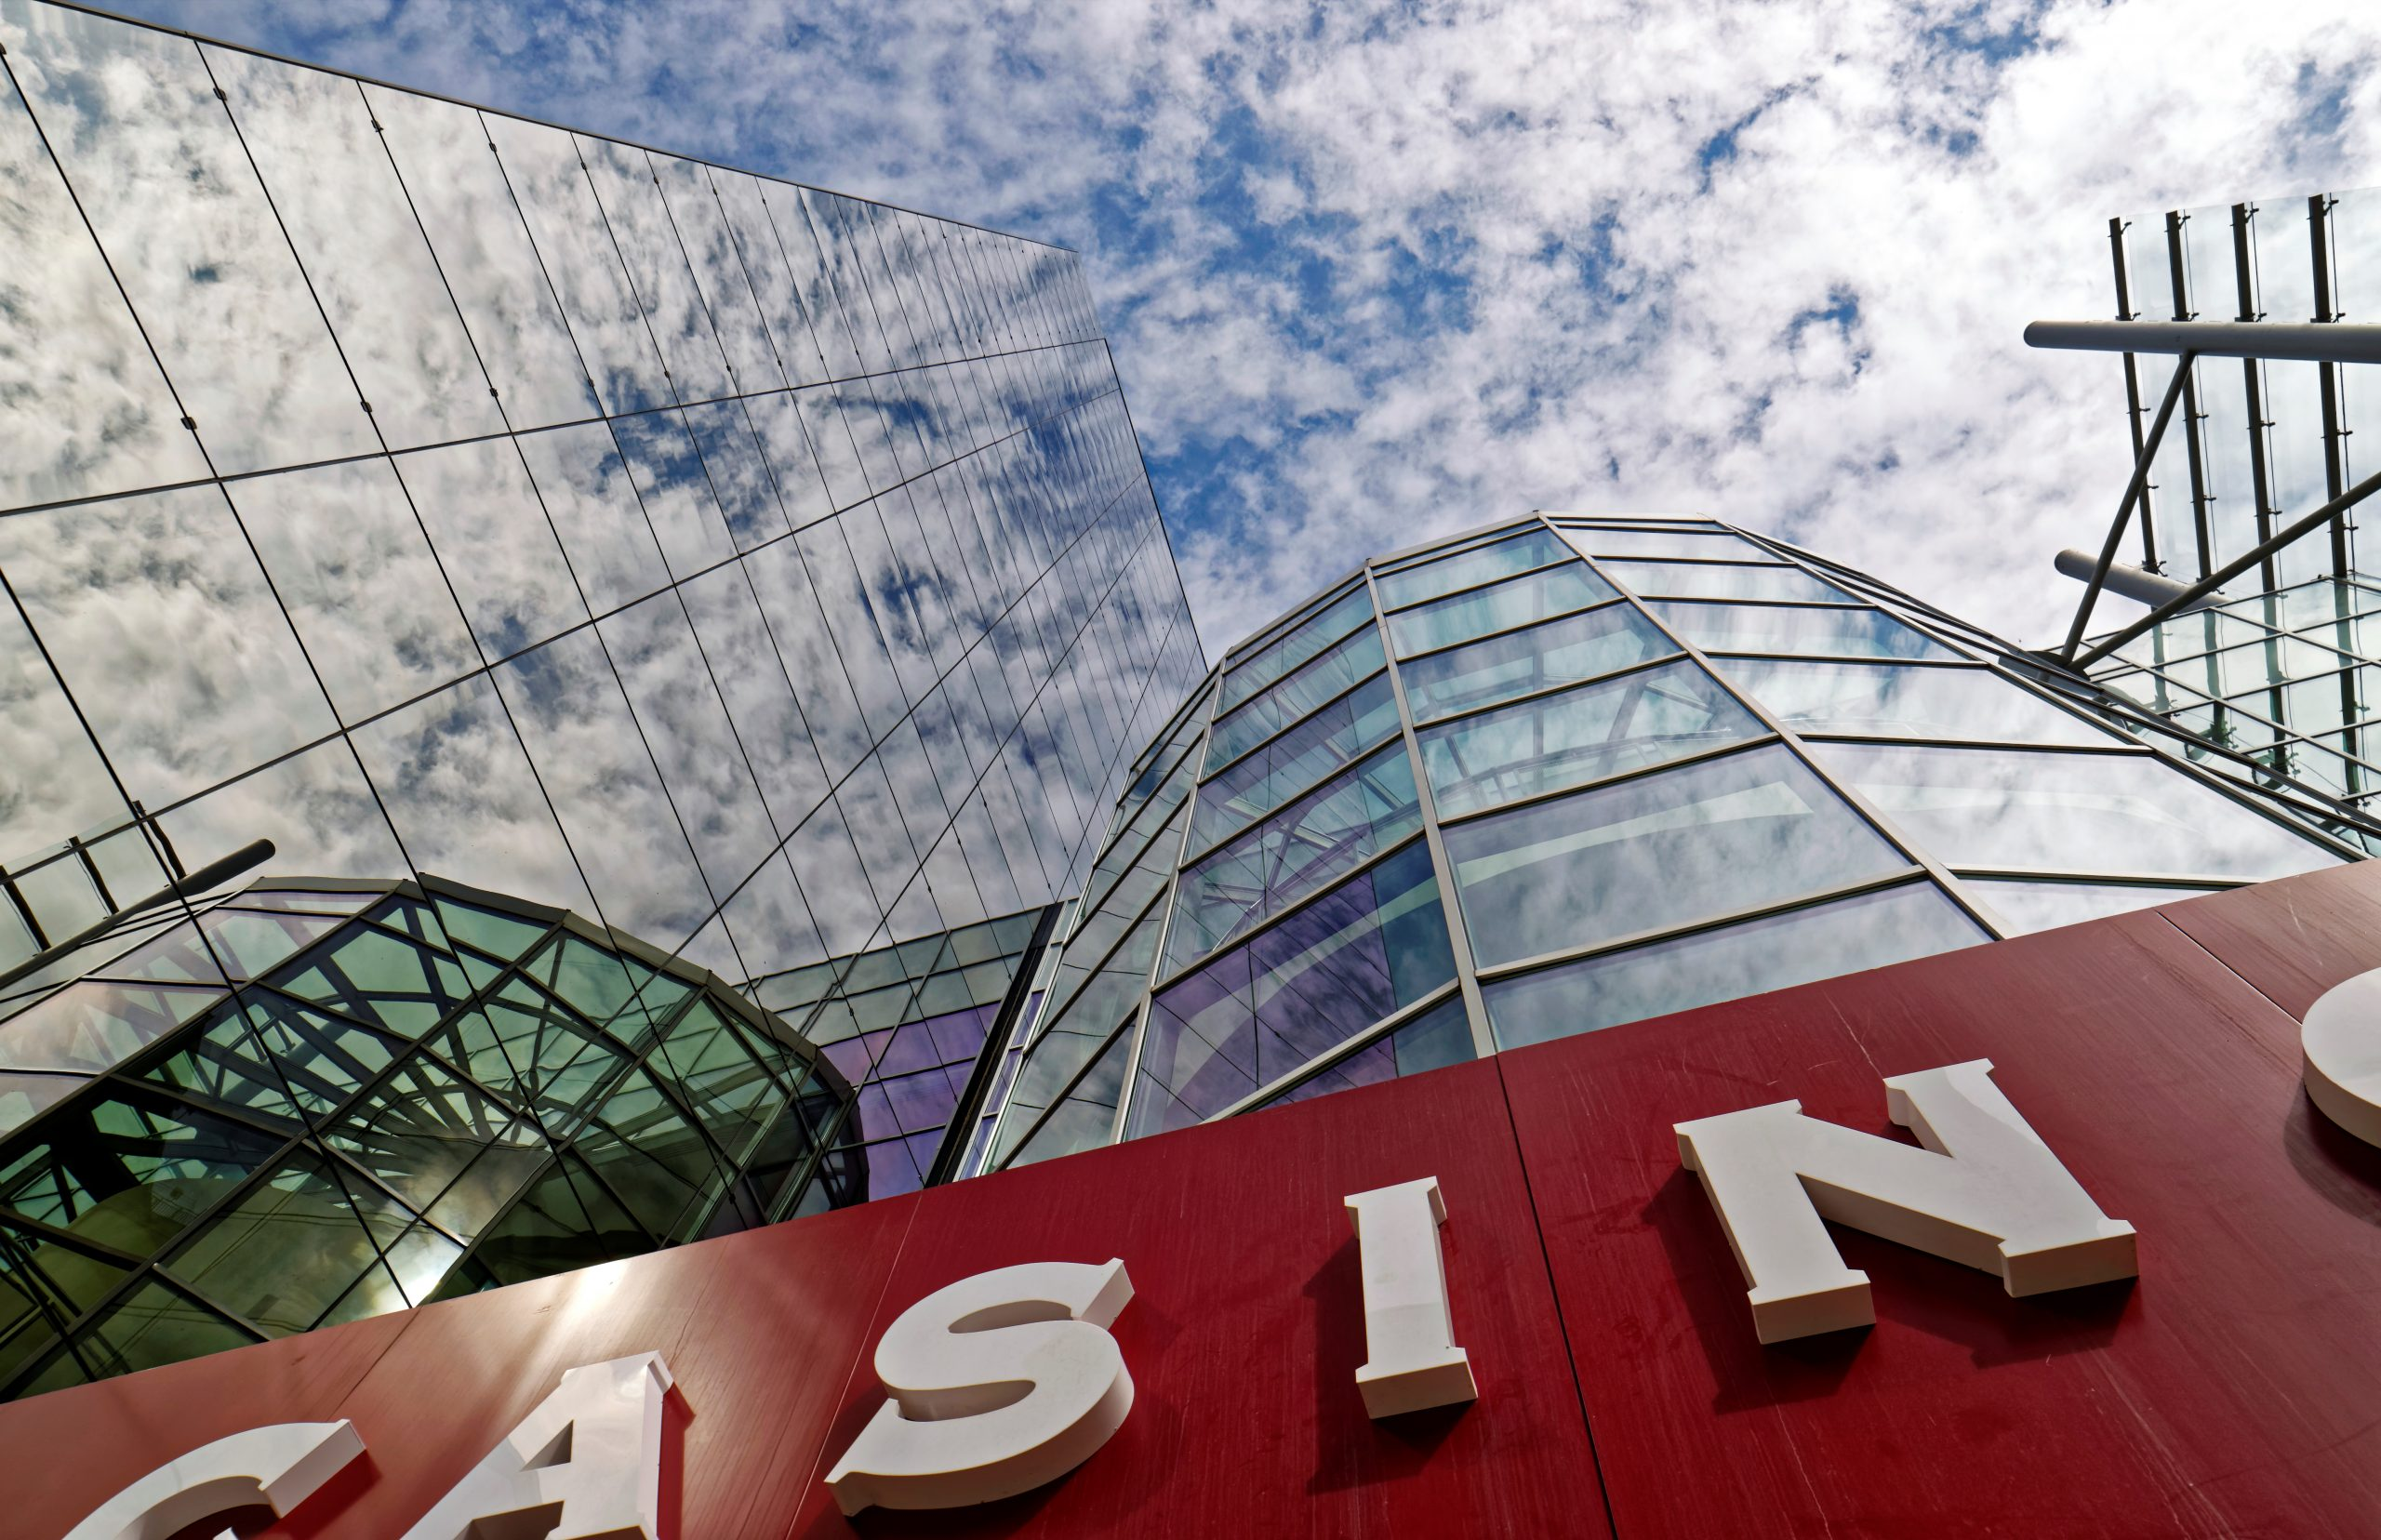 Casino and clouds